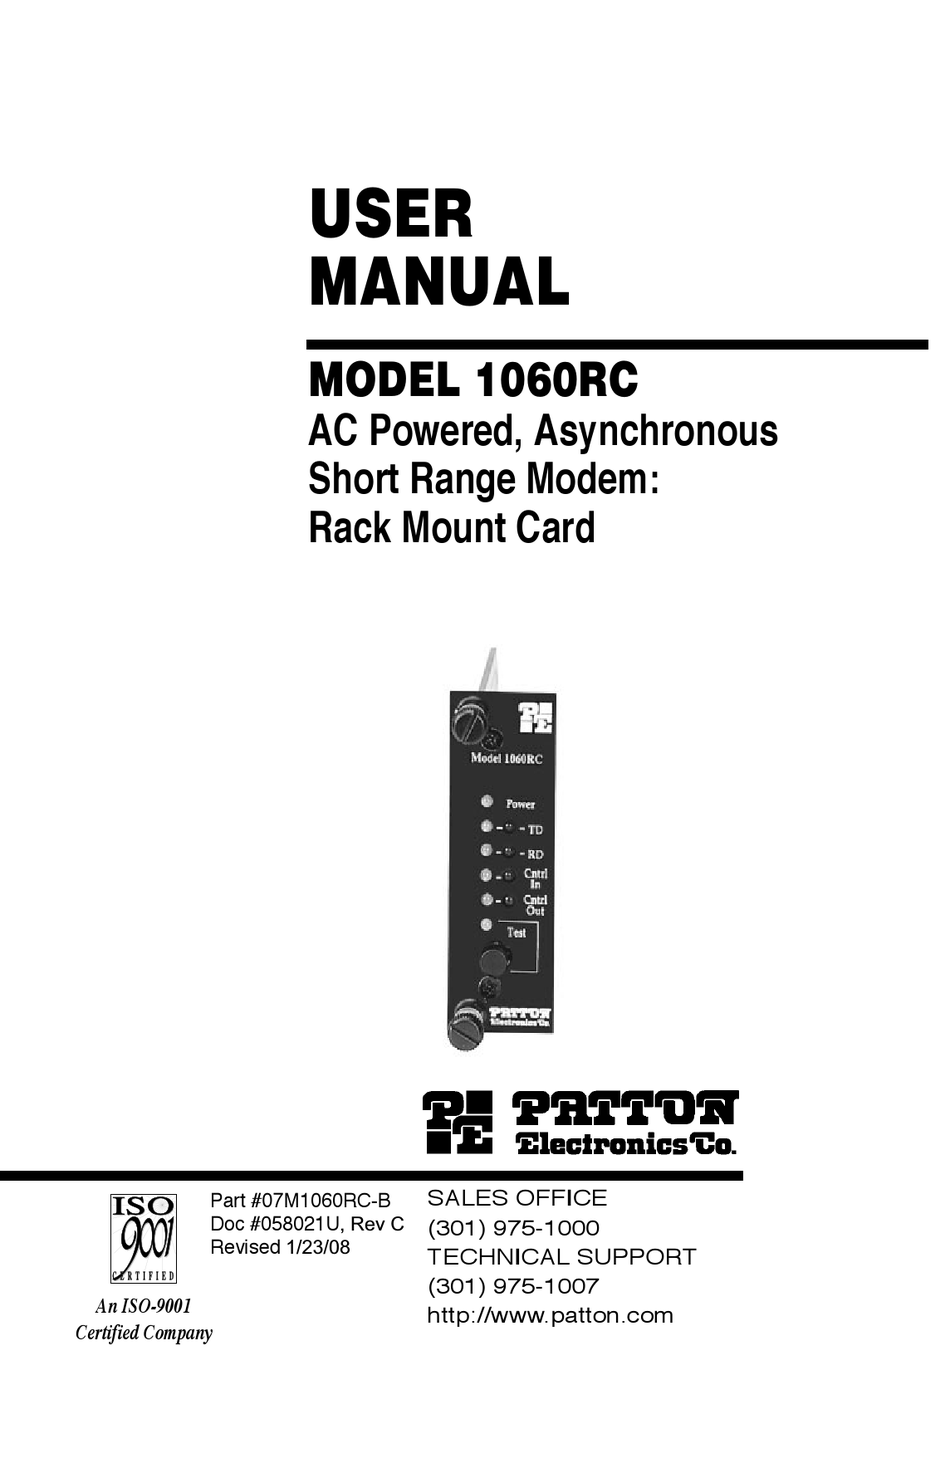 PATTON ELECTRONICS 1060RC USER MANUAL Pdf Download